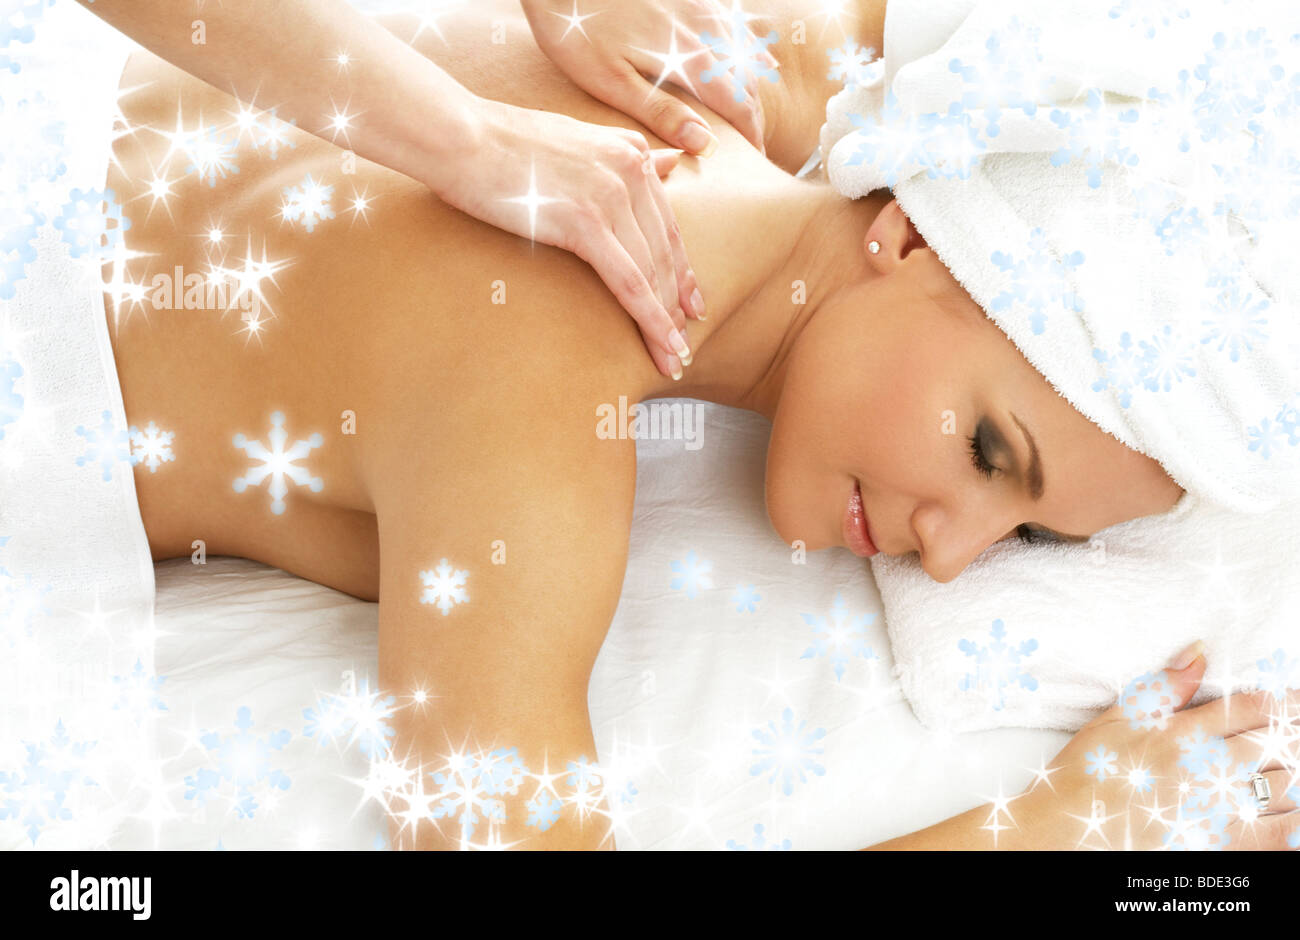 Erotic massage to restore harmony in the family: types and techniques of erotic massage 17